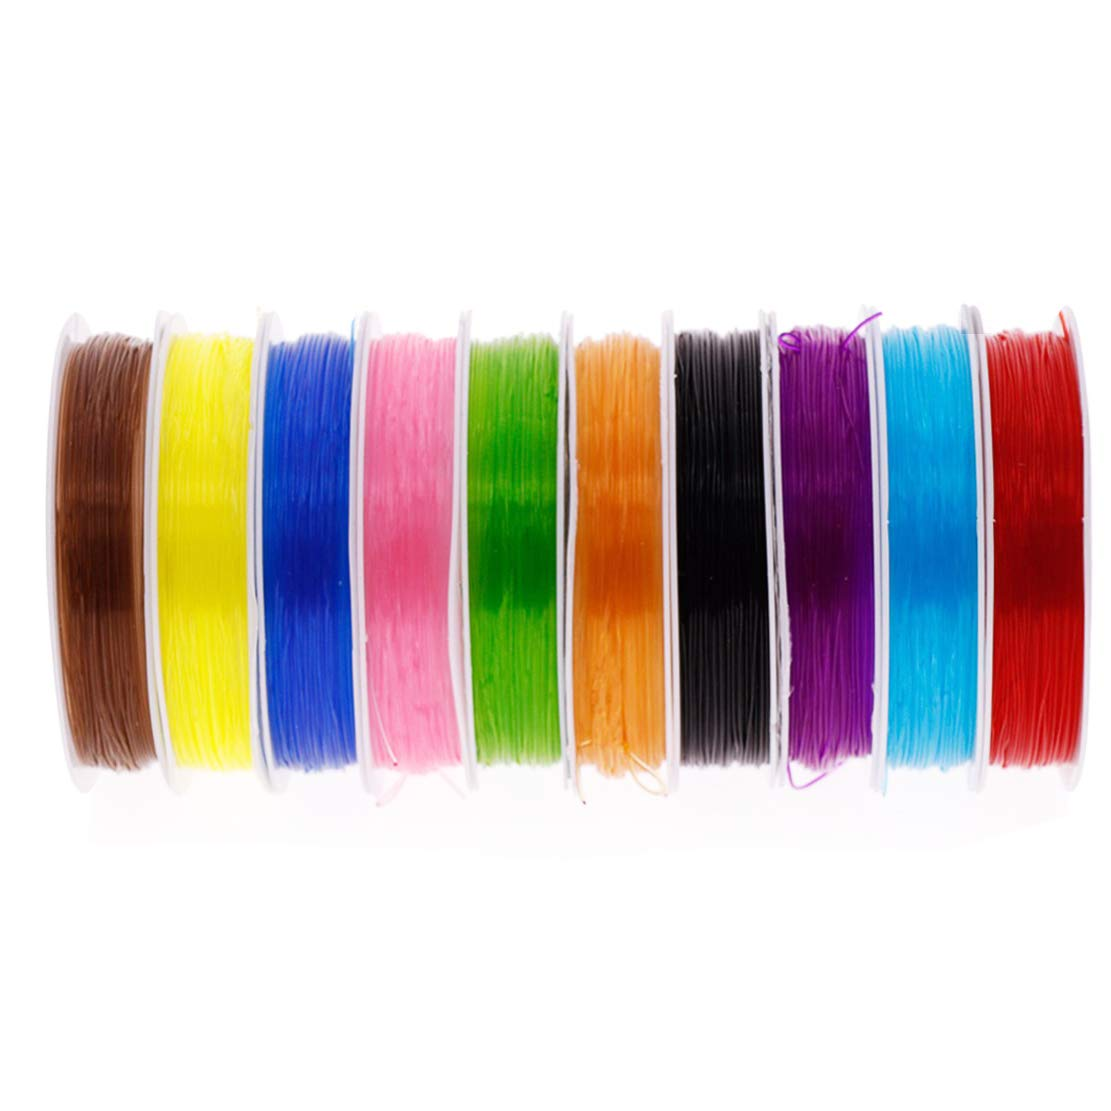 Bracelet String Elastic Stretch Threads Clear Crystal Beading String for Jewelry Bracelet Making (Color 1, 0.8mm) DIY House Seller